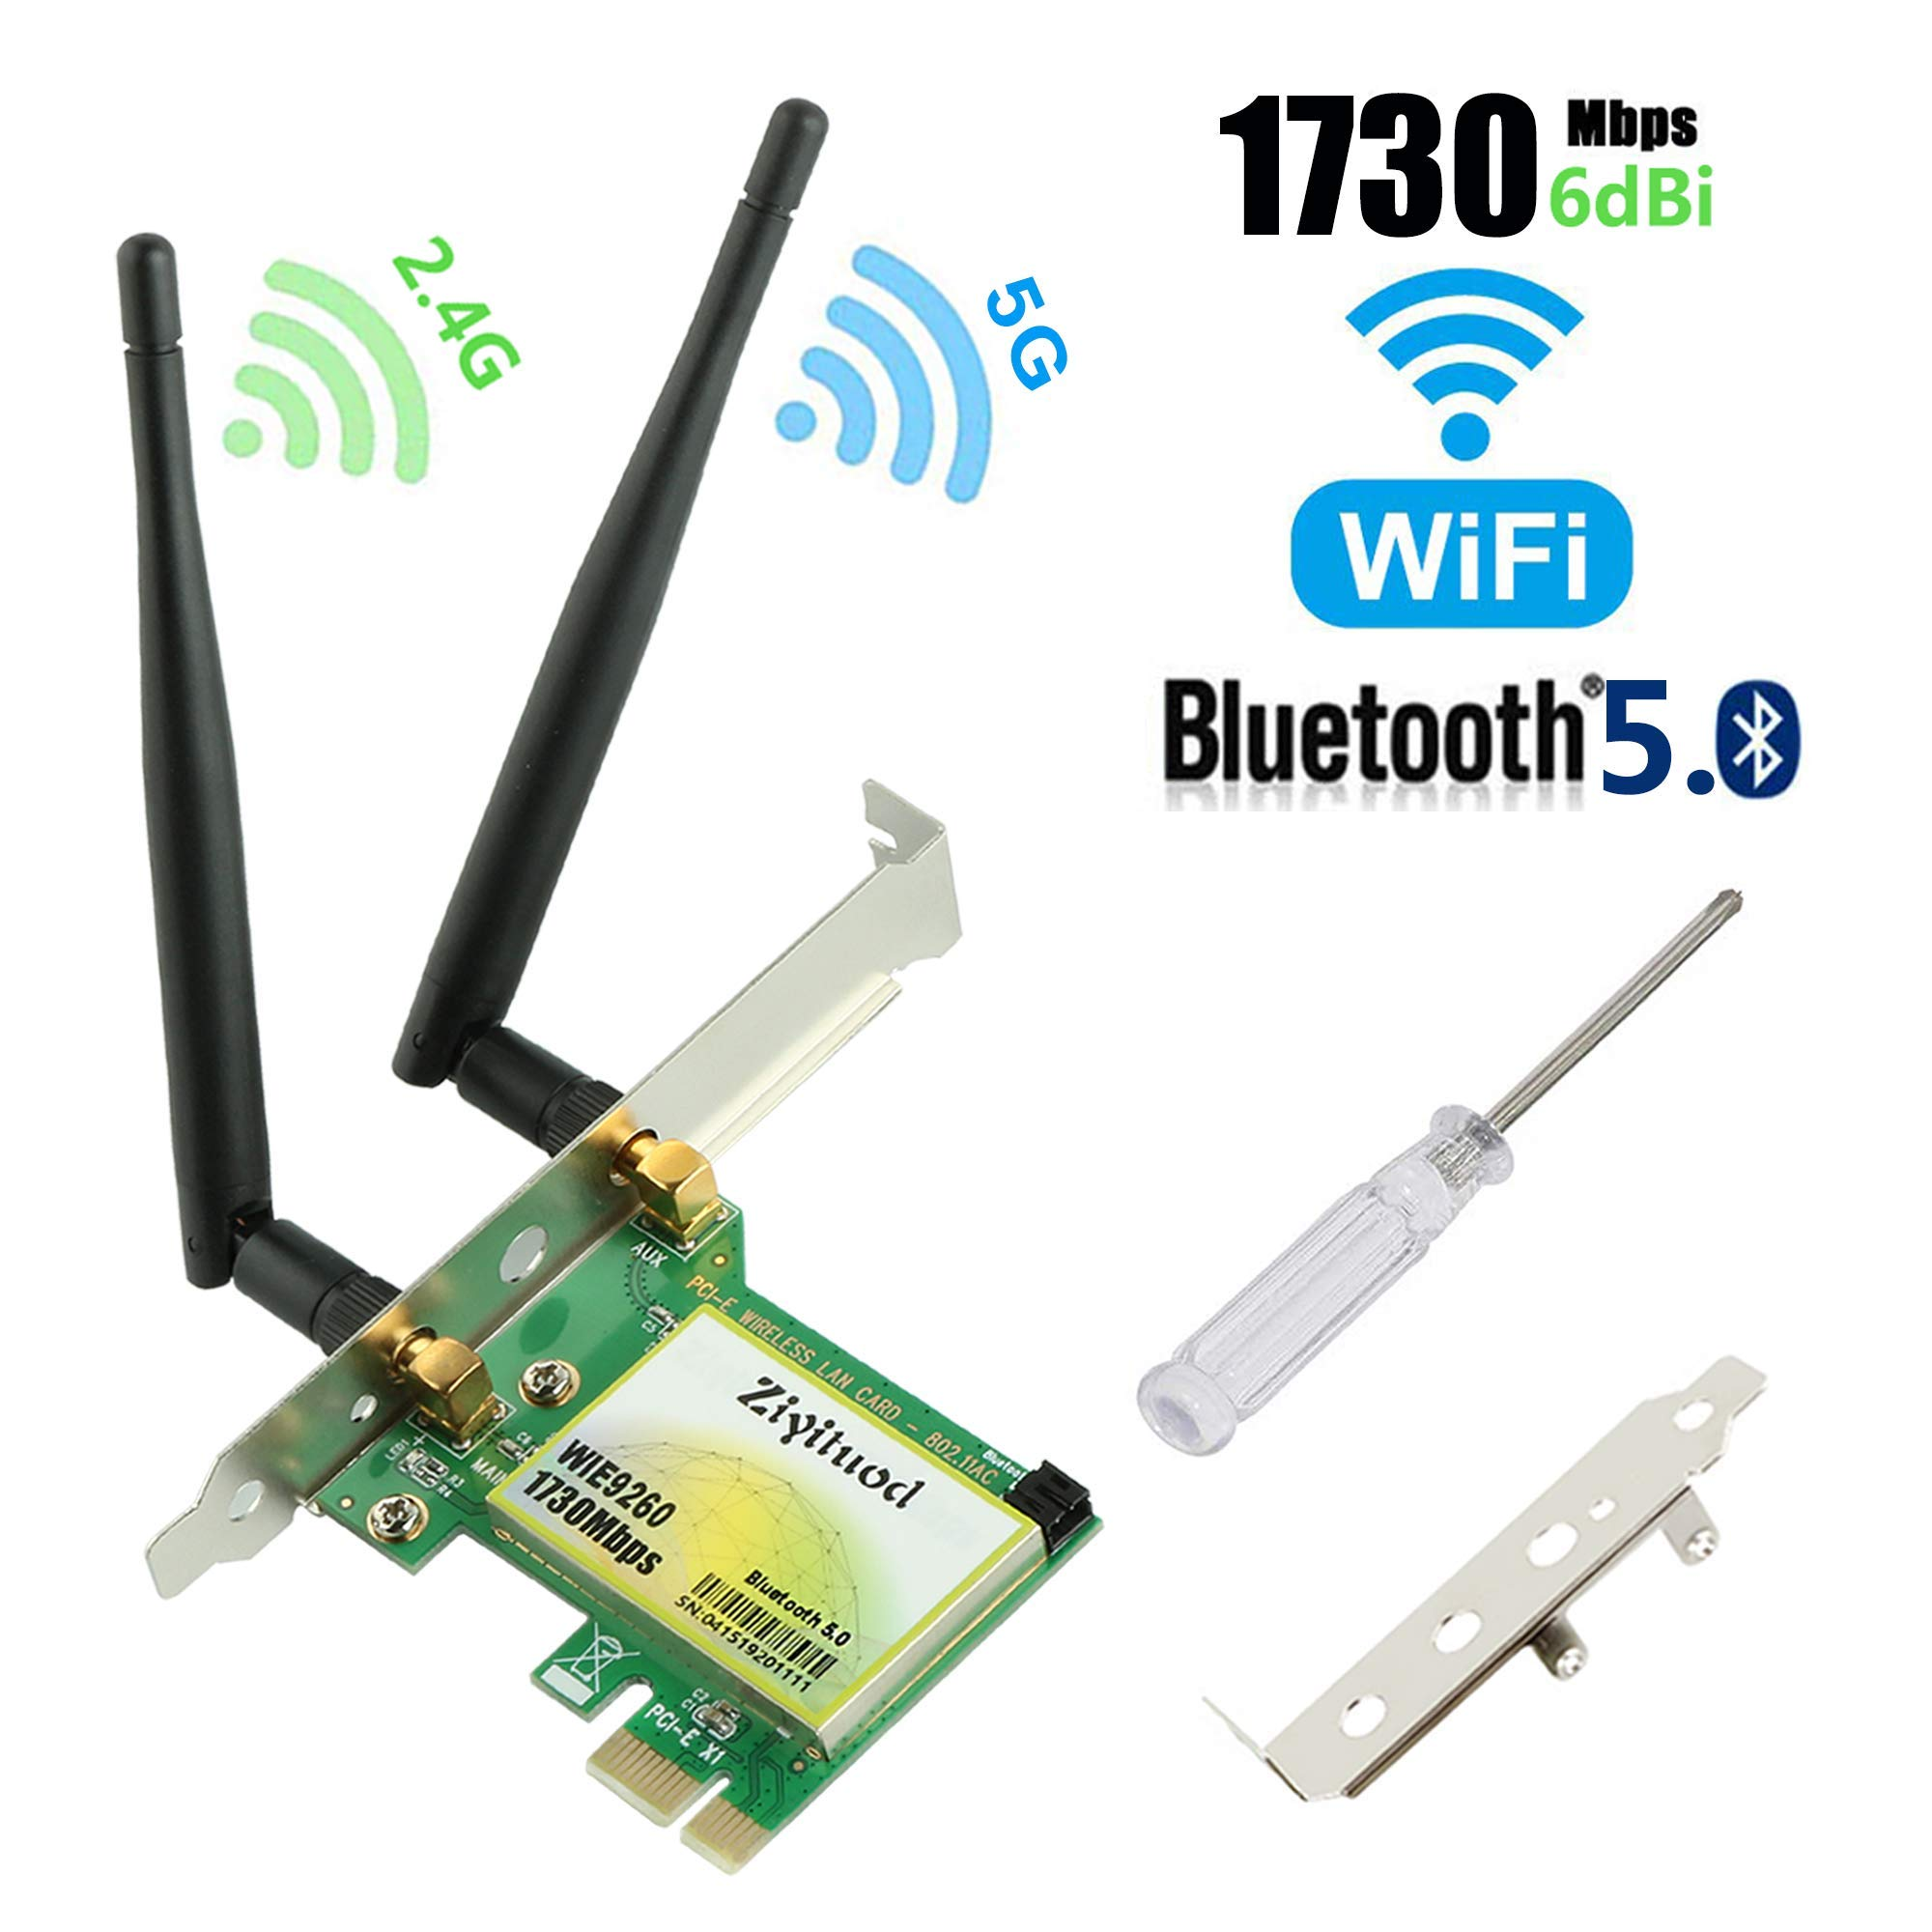 Gigabit WIFI Card, AC1730Mbps PCIe Wireless Card with Bluetooth 5.0, Dual-Band PCI-Express Network Card(2.4GHz 300Mbps+5GHz 1430Mbps), Wifi Adapter Card for Desktop PC, Supports Windows 10(WIE9260) by Ziyituod